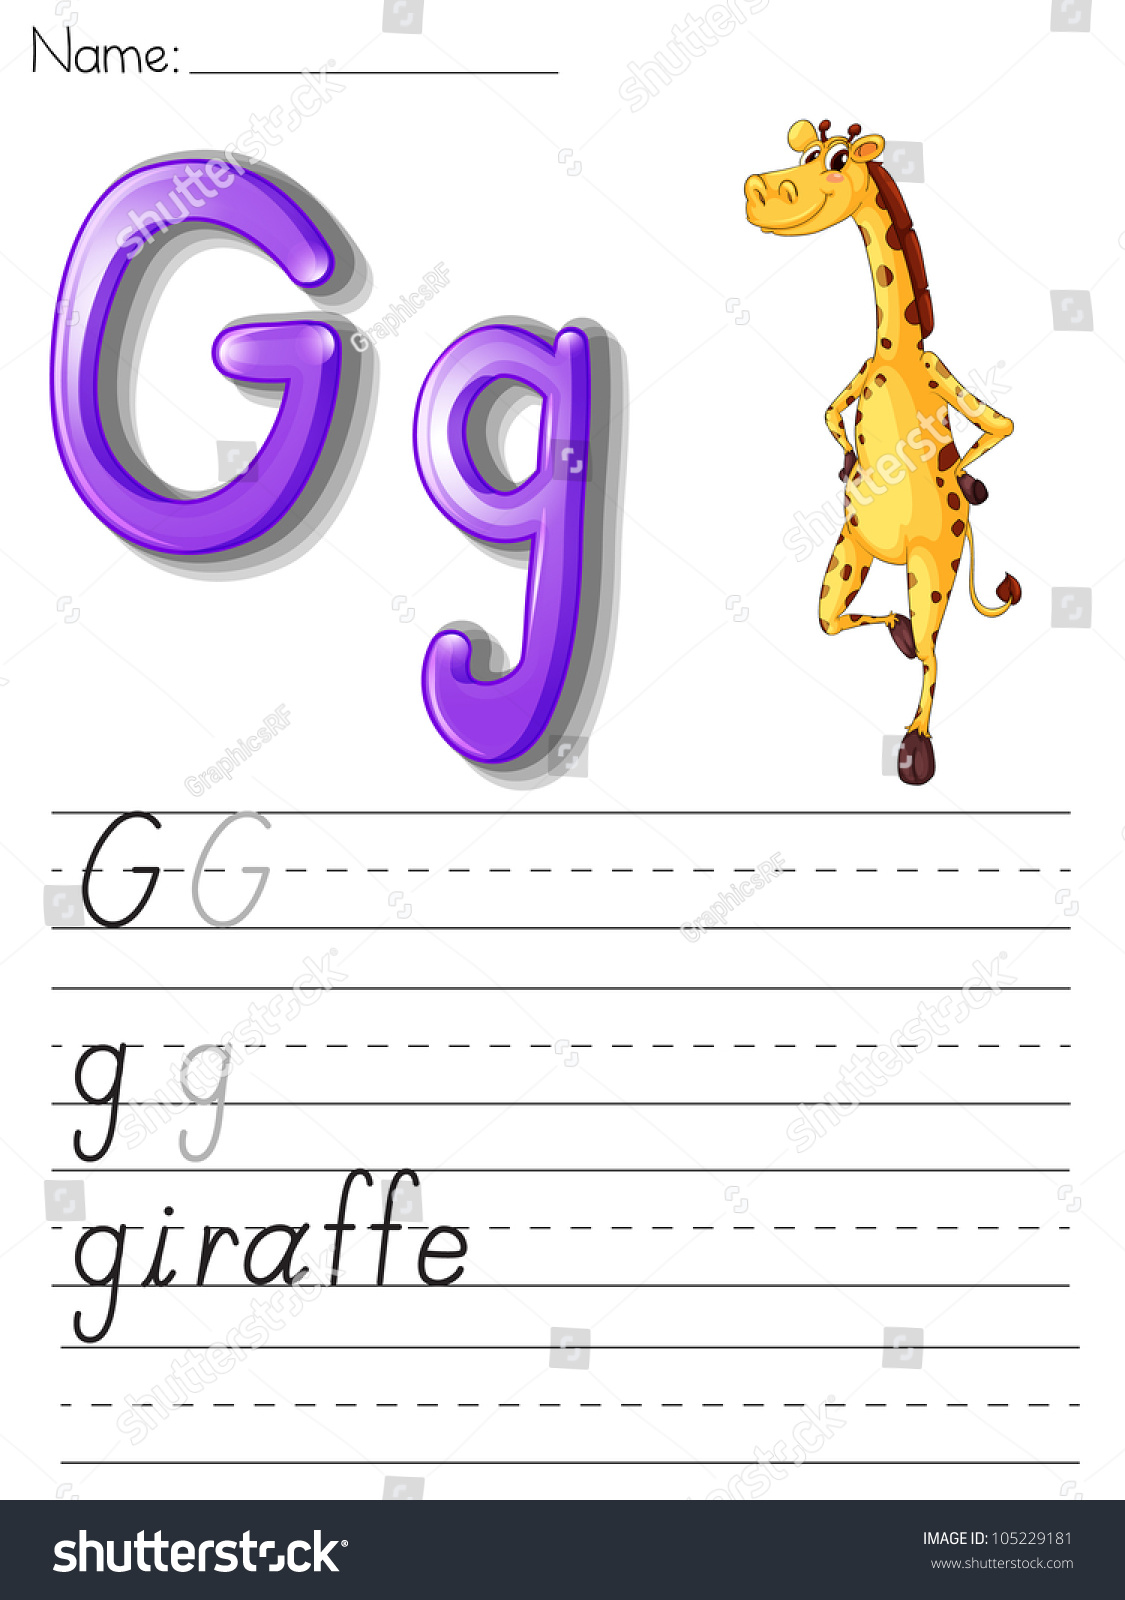 Alphabet Worksheet On White Paper Eps Stock Illustration